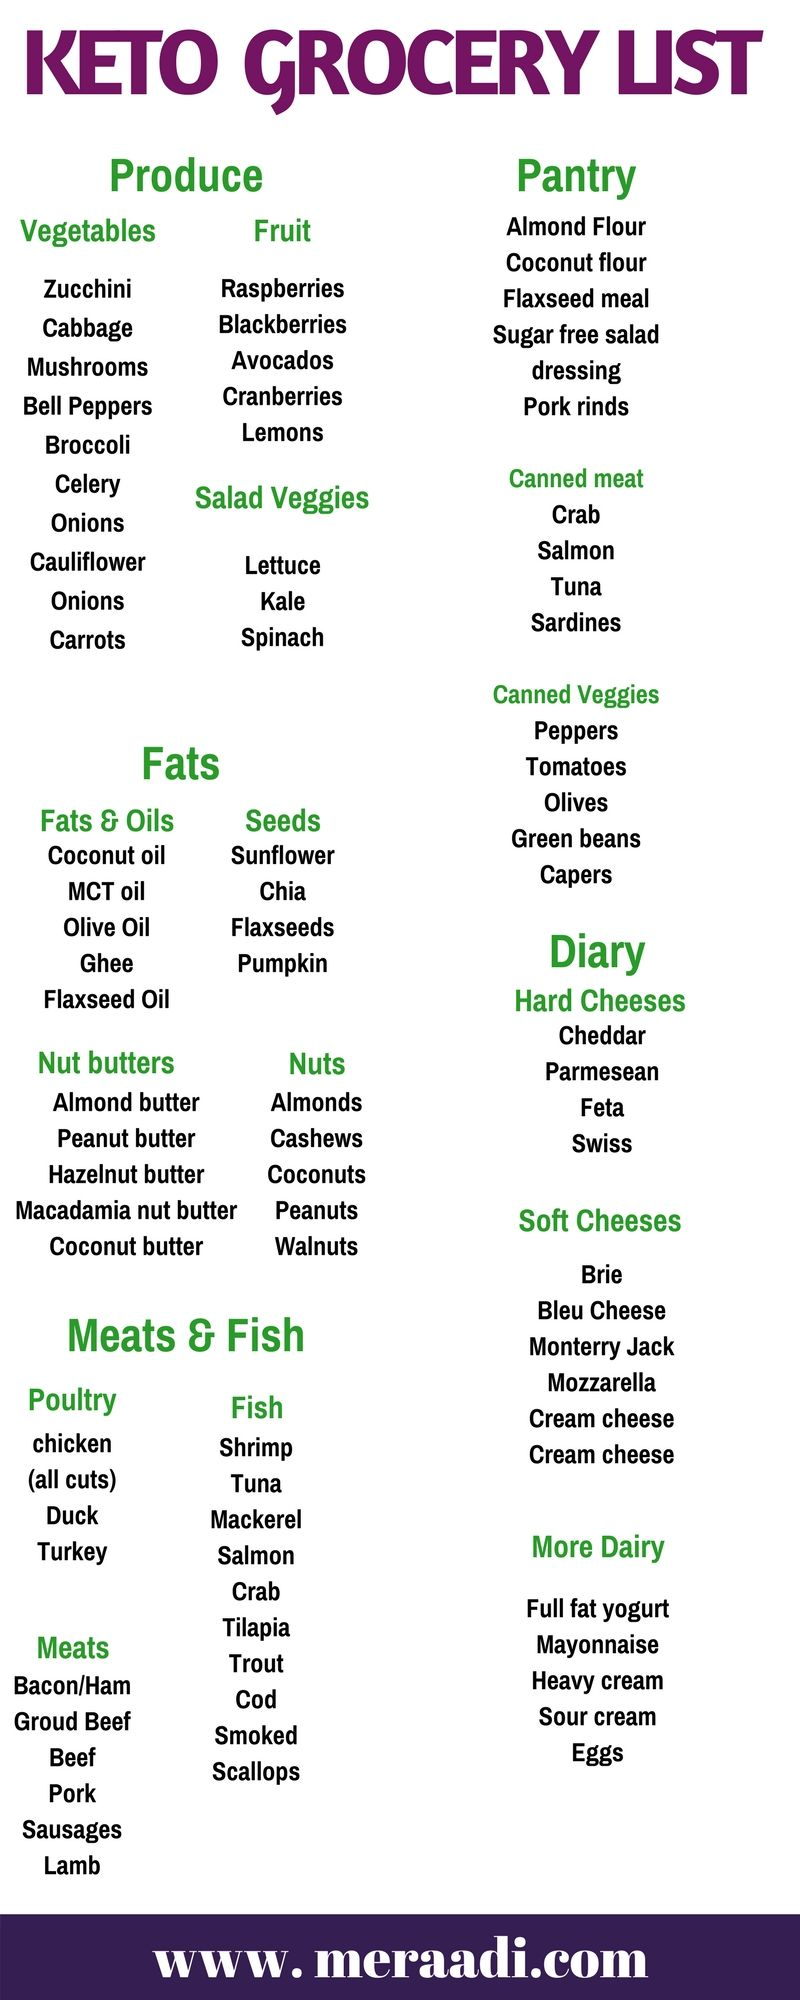 This keto grocery list is THE BEST! This keto shopping